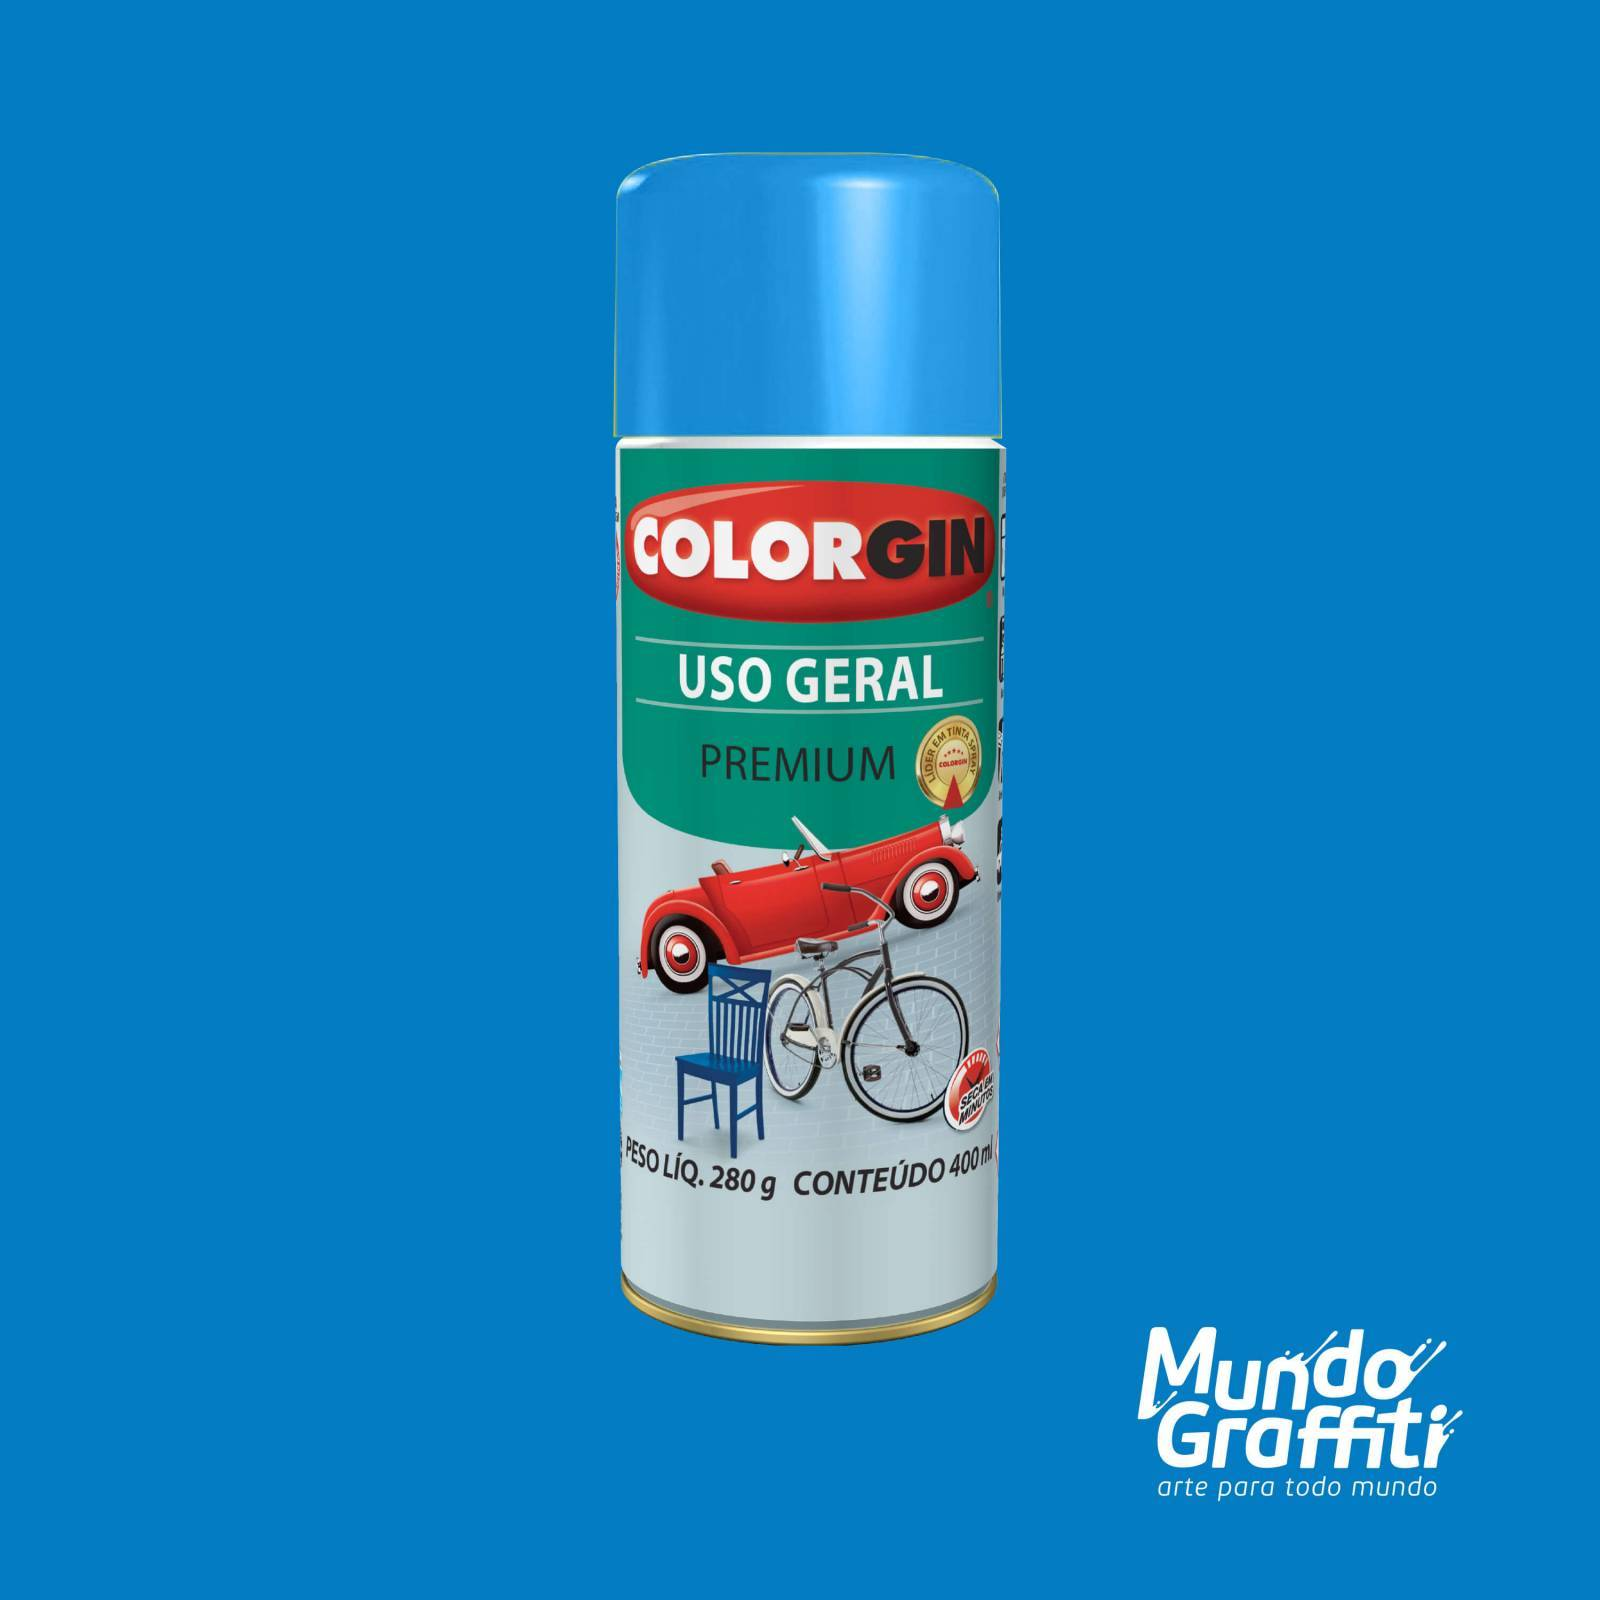 Tinta Spray Colorgin Uso Geral 55101 Azul Medio 400ml - Mundo Graffiti